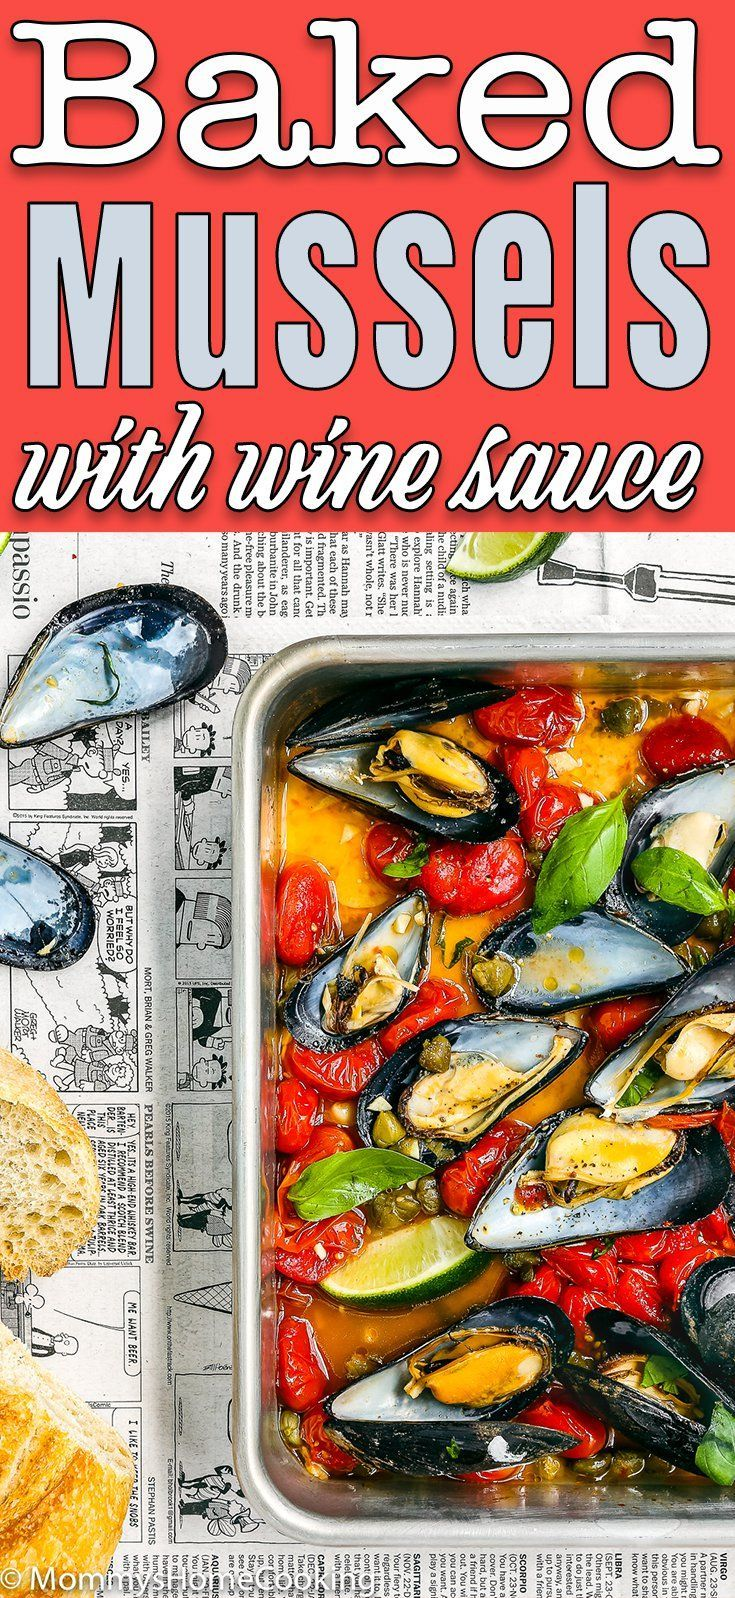 Easy Baked Spicy Mussels Video Recipe Shellfish Recipes Recipes Mussels